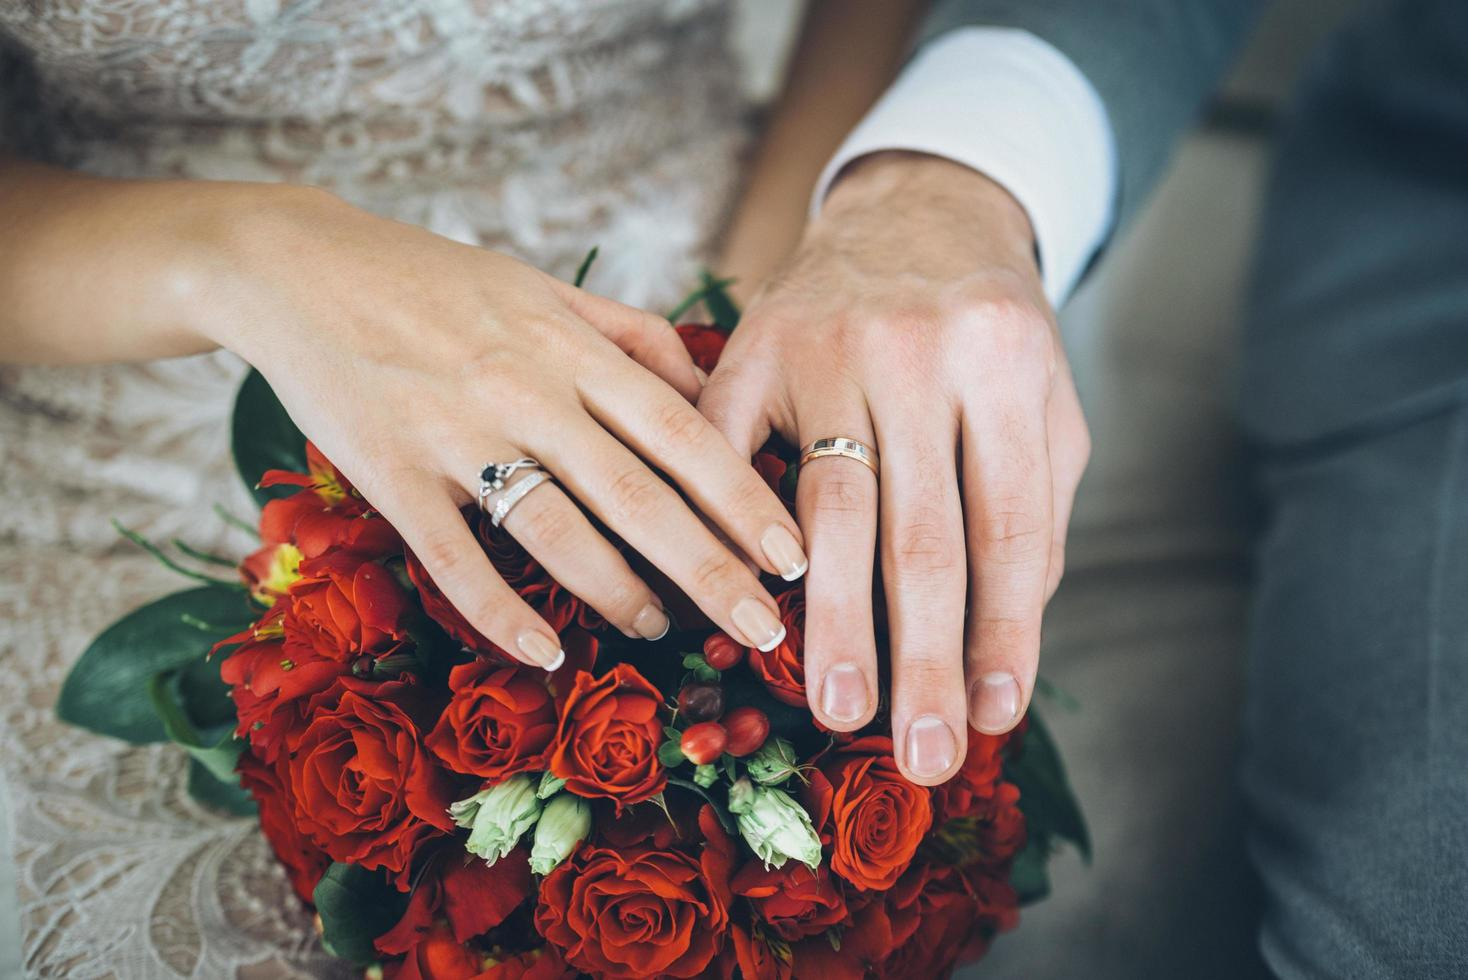 Bride groom with red bouquet photo